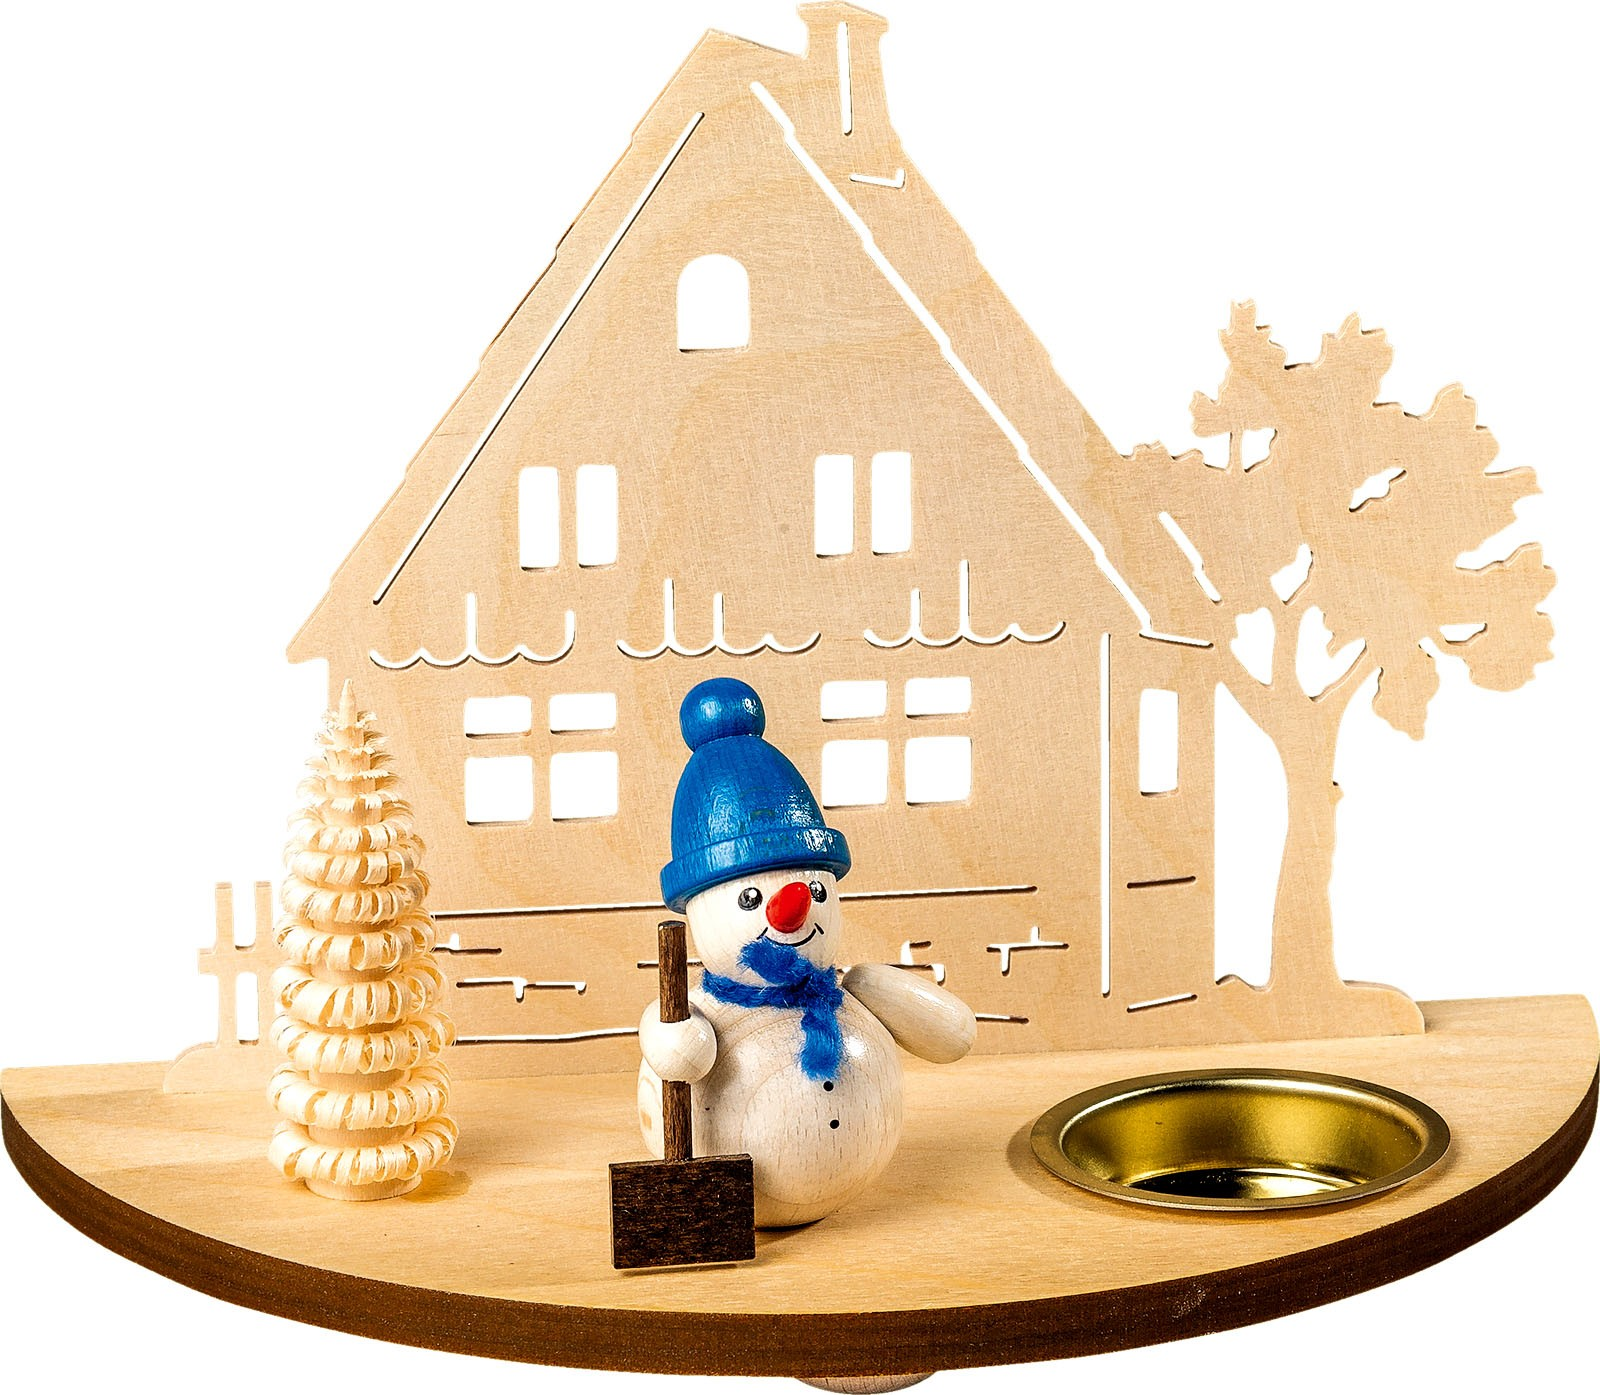 candleholder with figures - snowman, blue